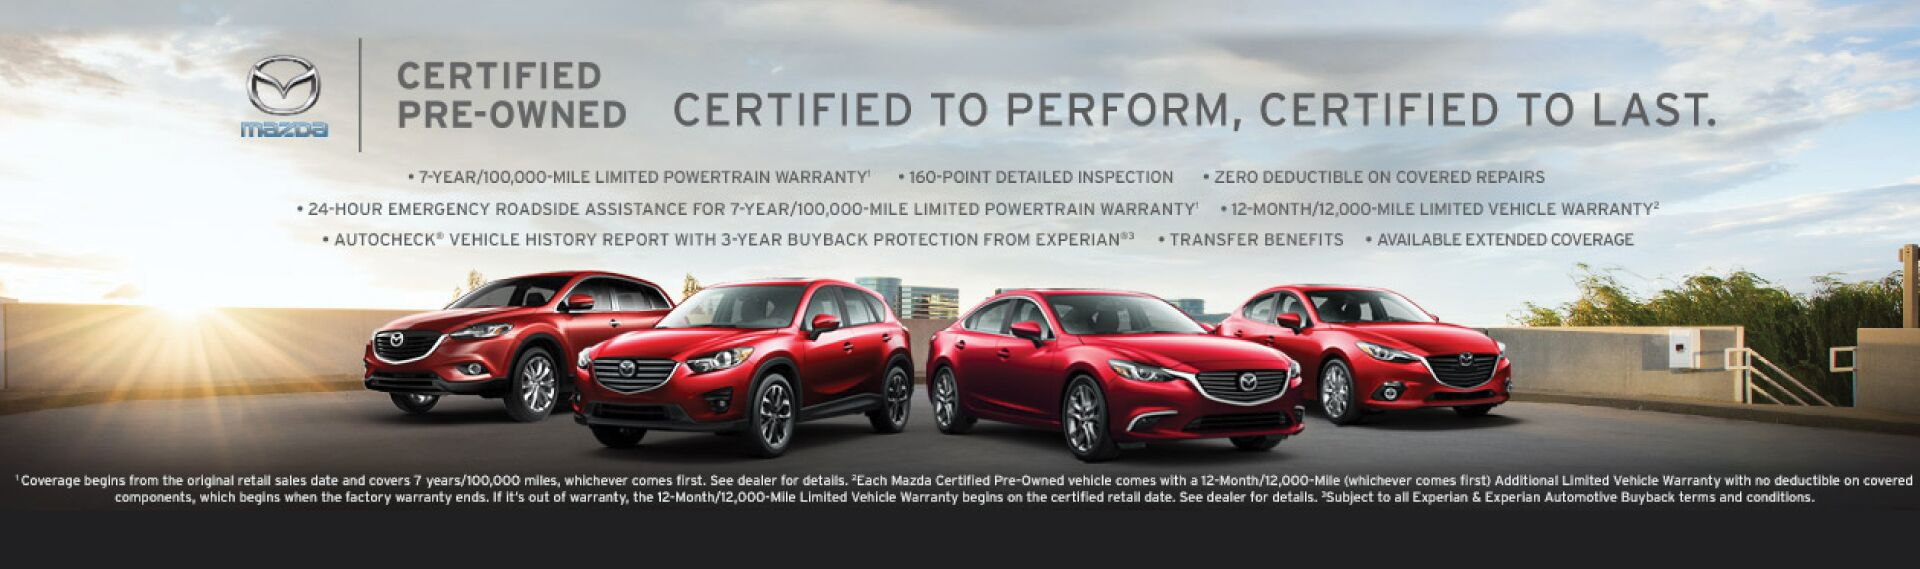 MAzda Certified Pre-Onwed Vehicles